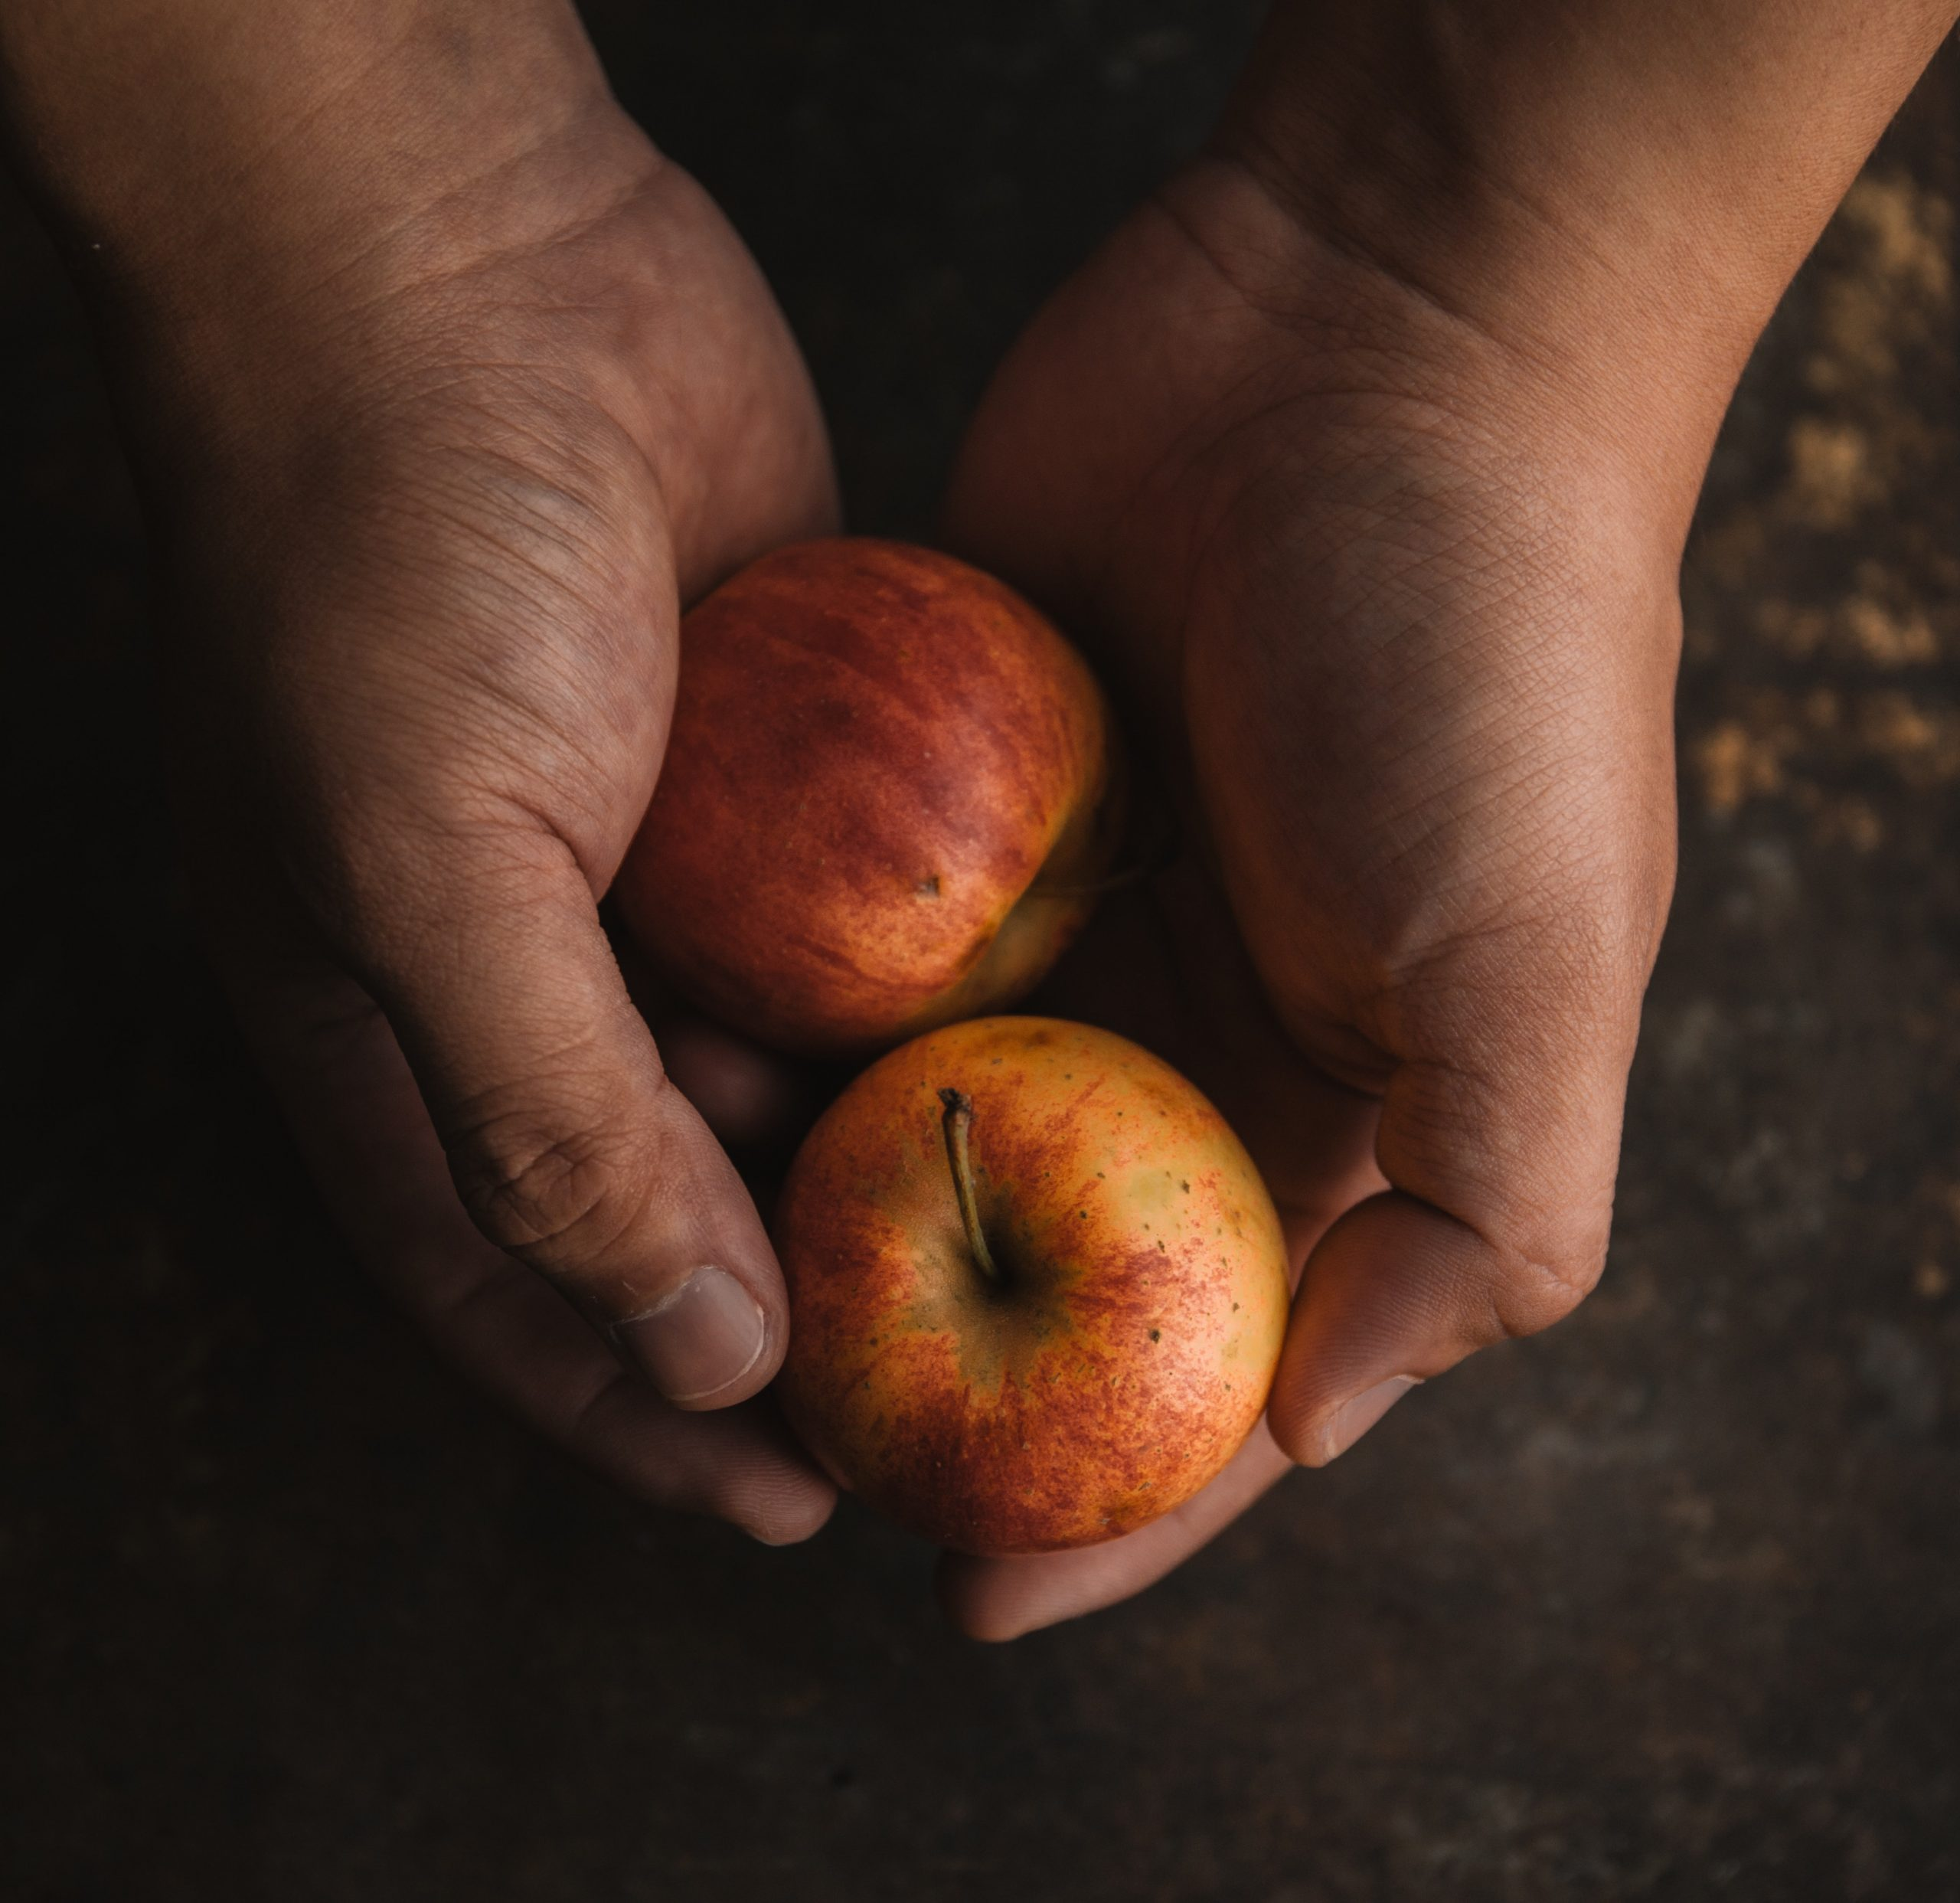 2 hands, brown with dirt, hold a single apple